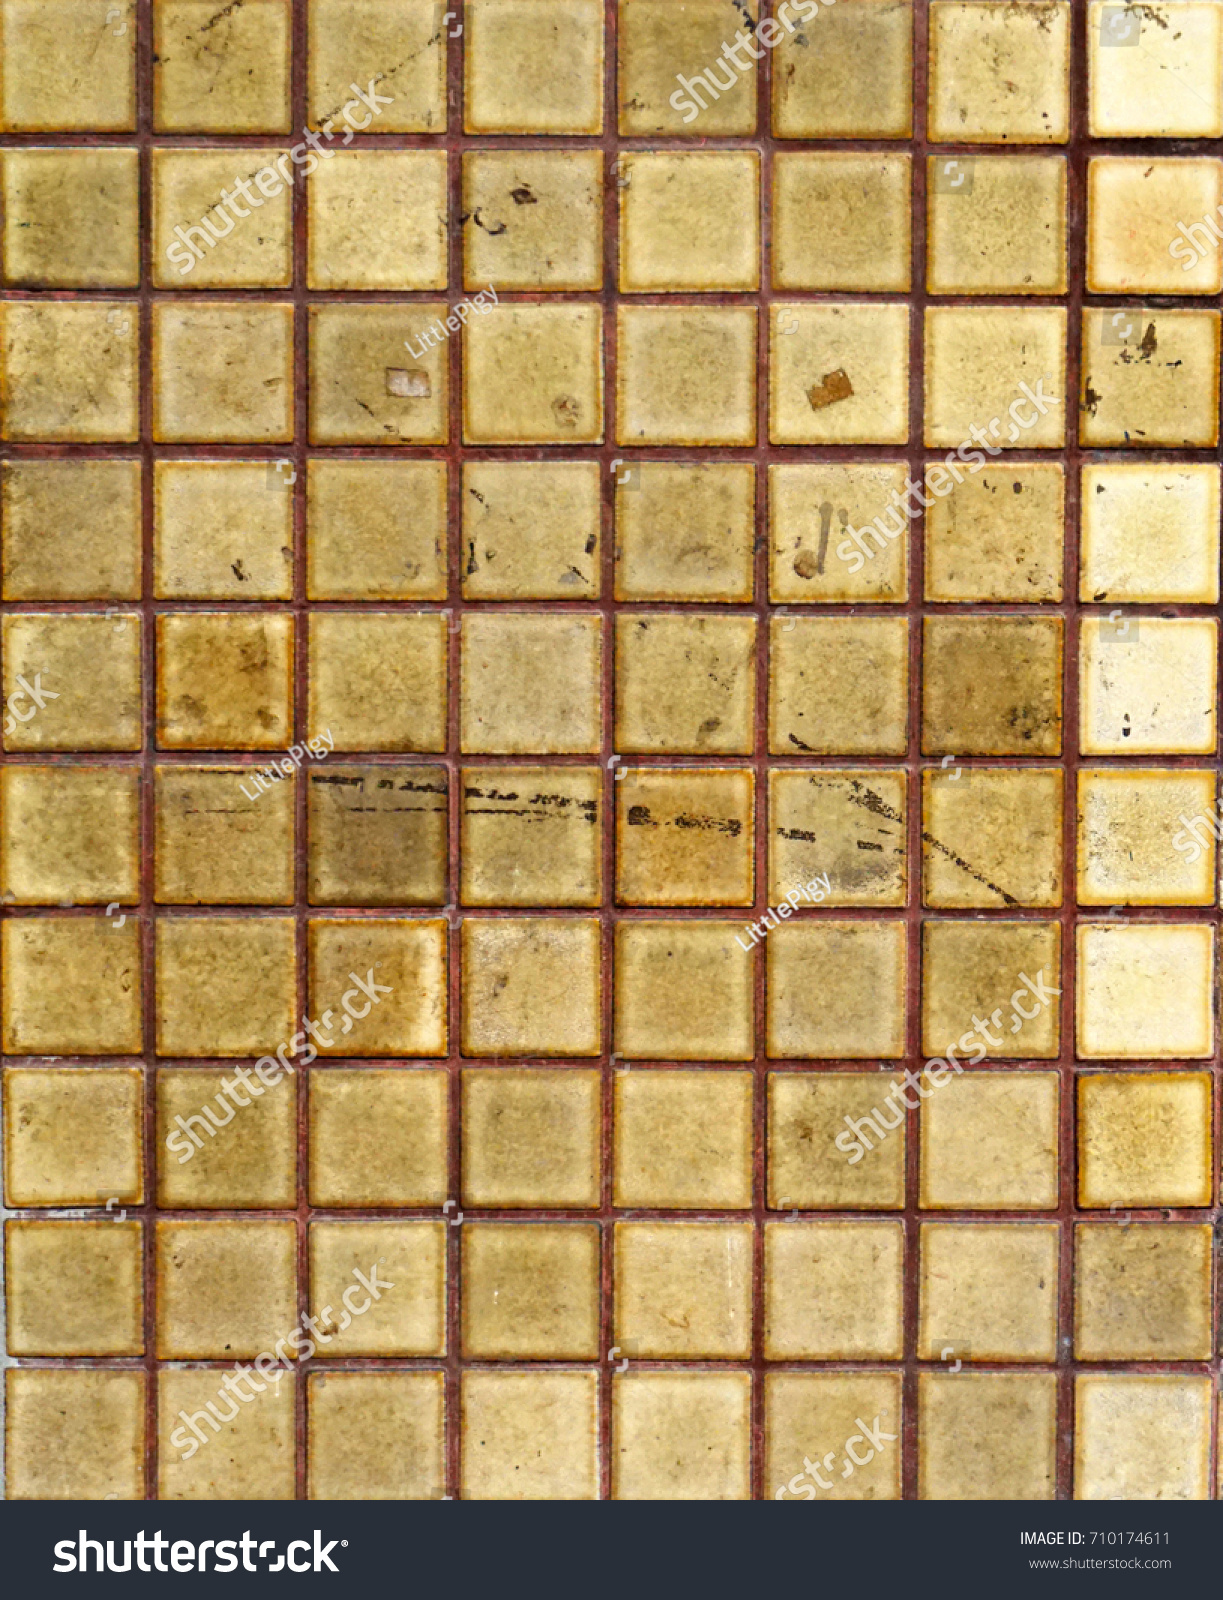 Old ceramic tiles texture background dirty stock photo 710174611 old ceramic tiles texture and background with dirty stain dailygadgetfo Images